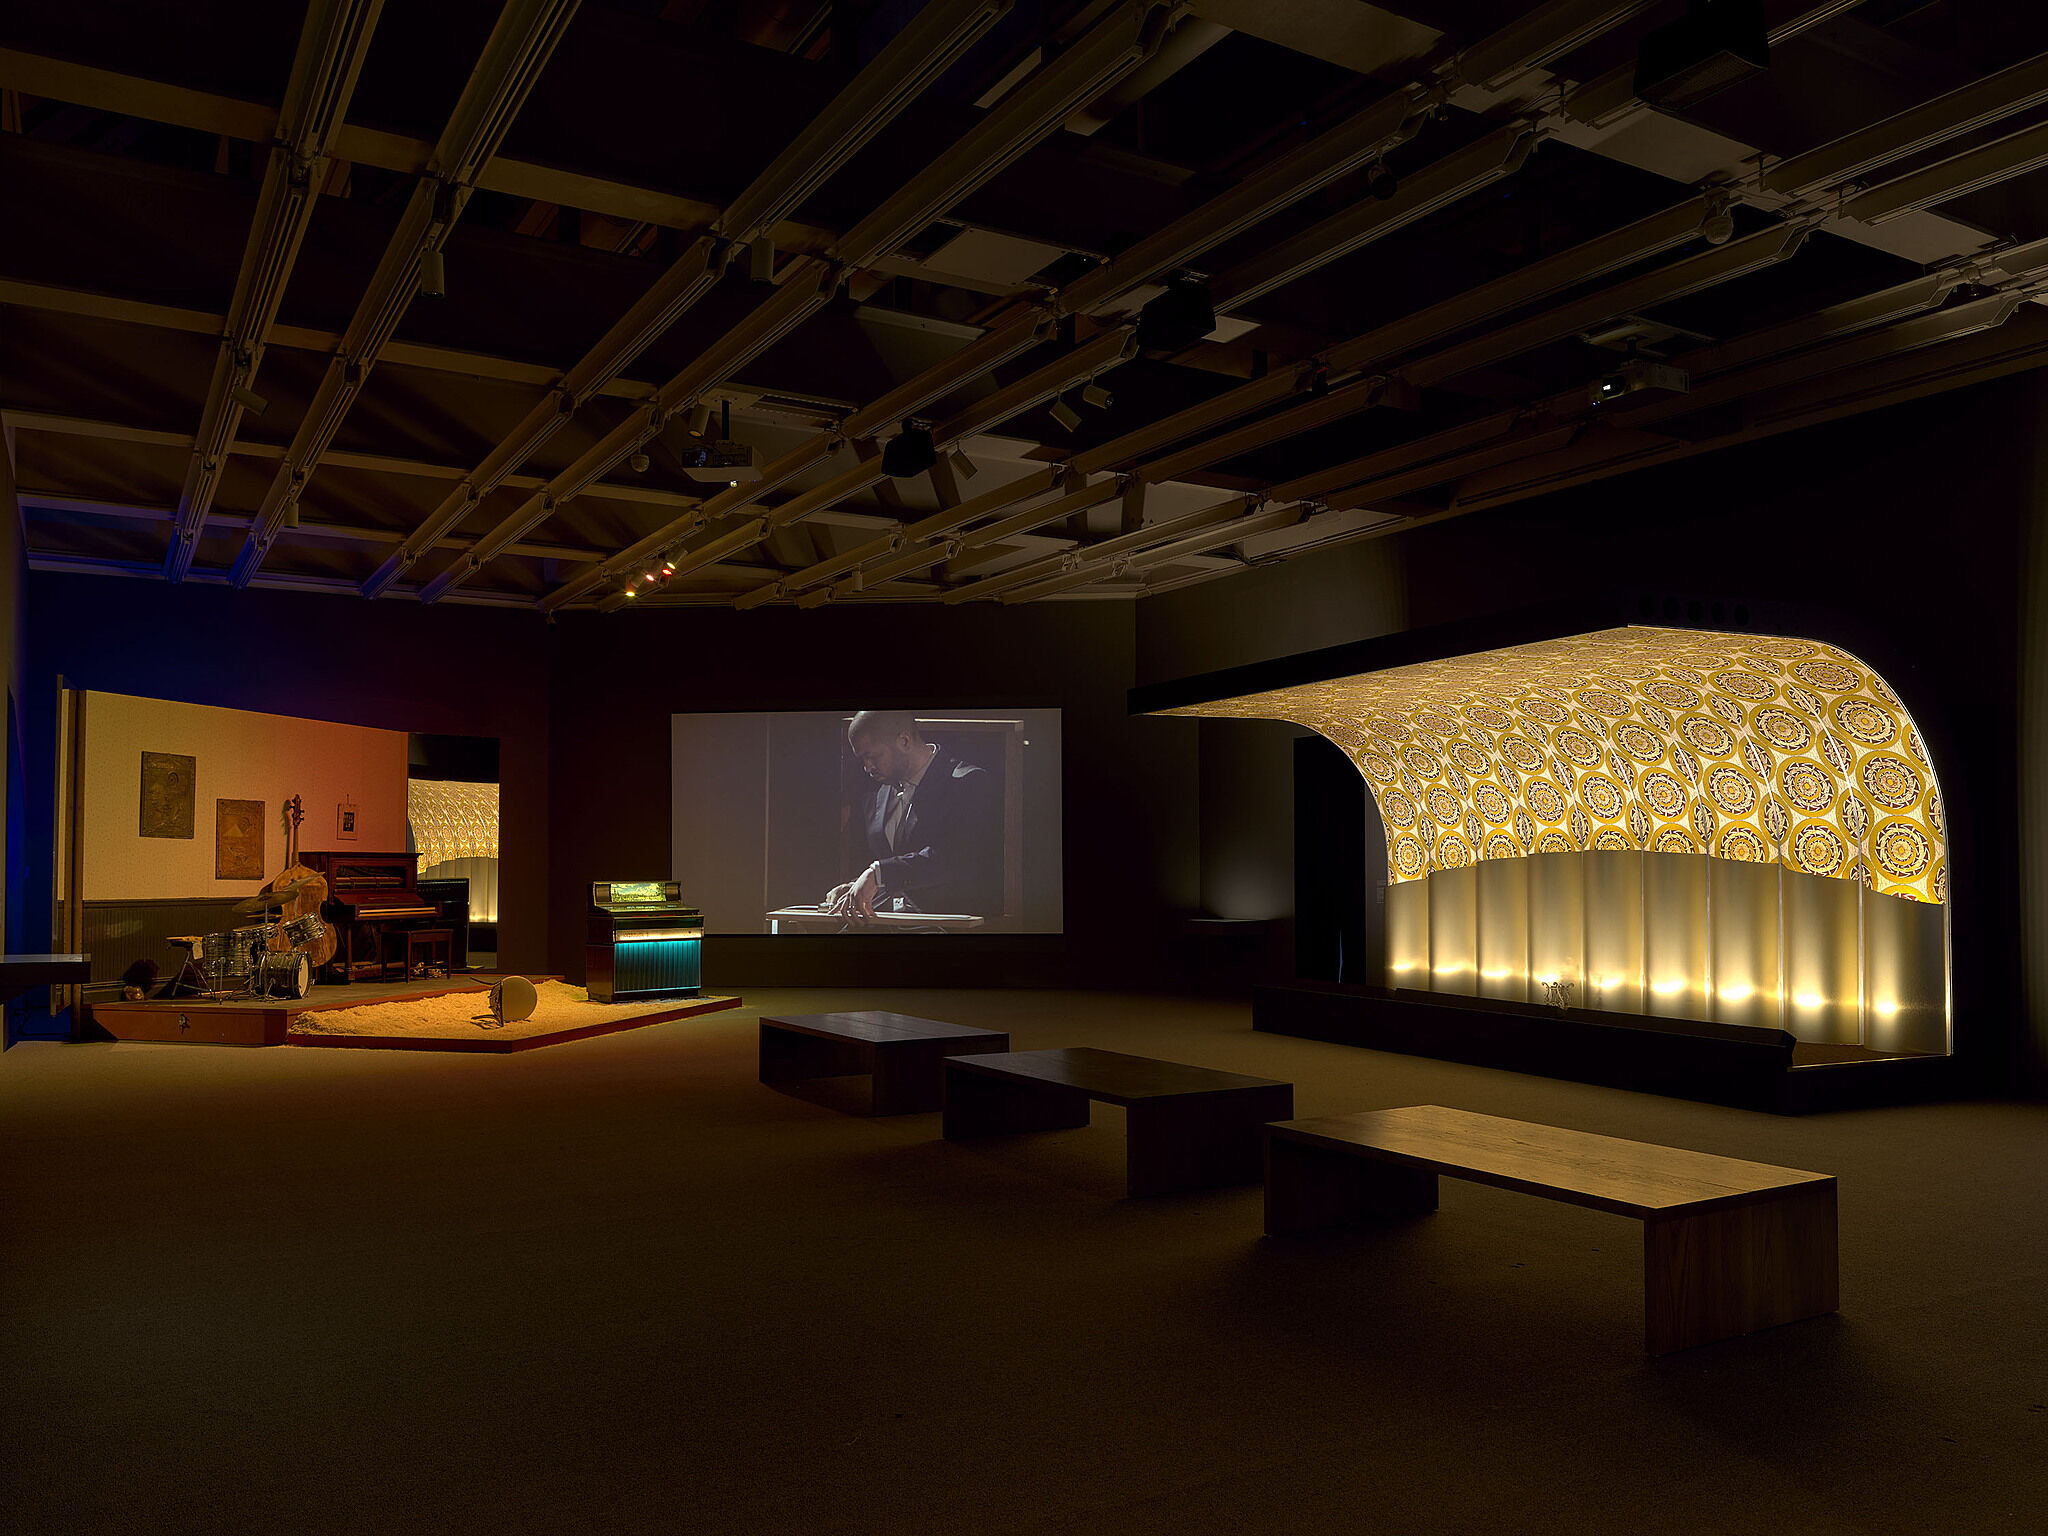 An image of a gallery with three stages and various musical instruments and video projections.